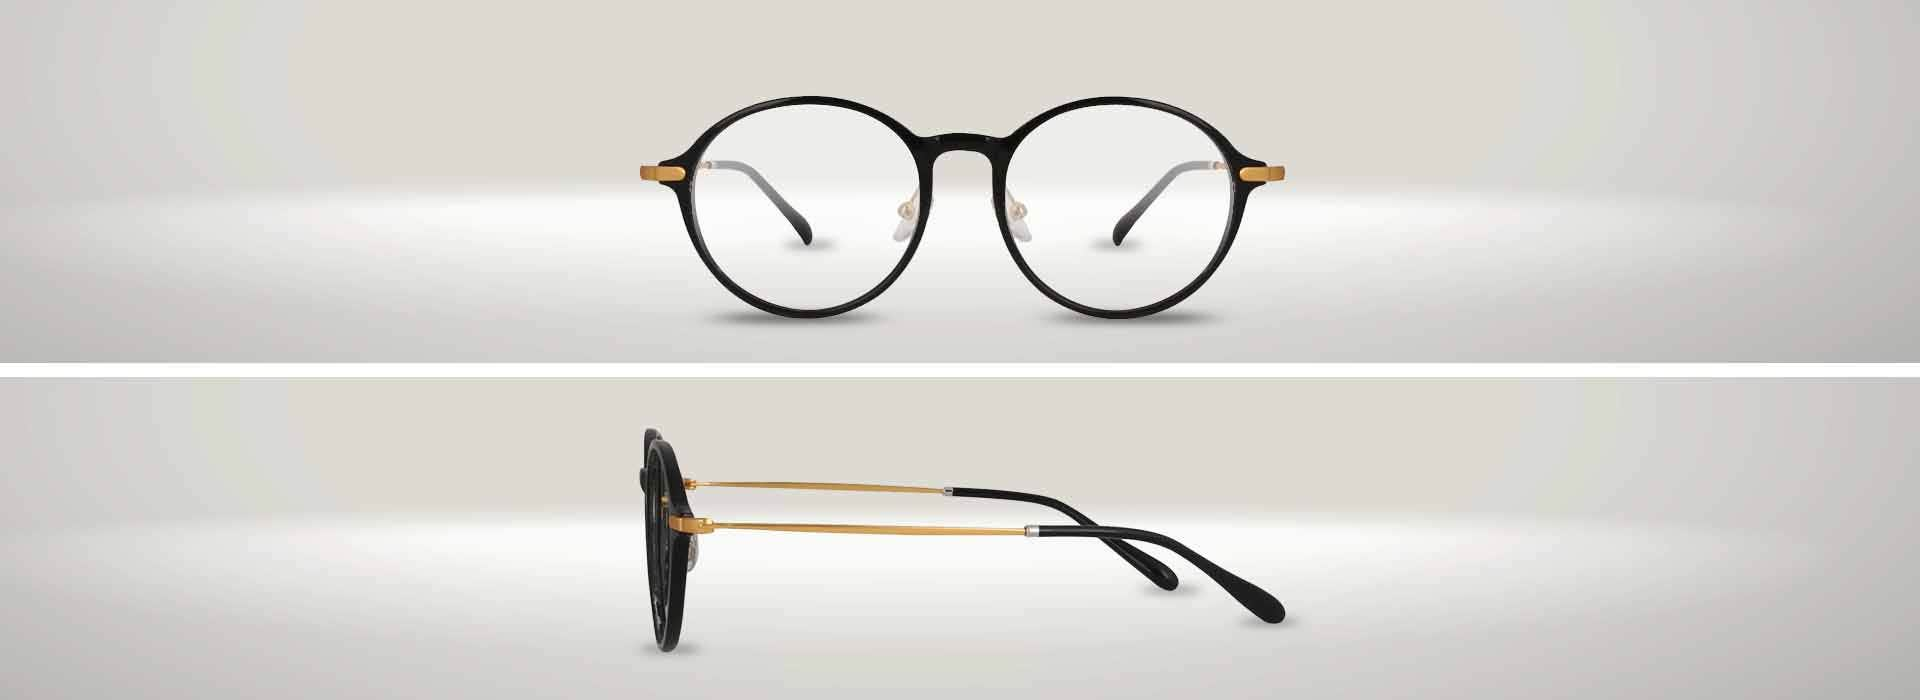 The 127955-C ROUND EYEGLASSES